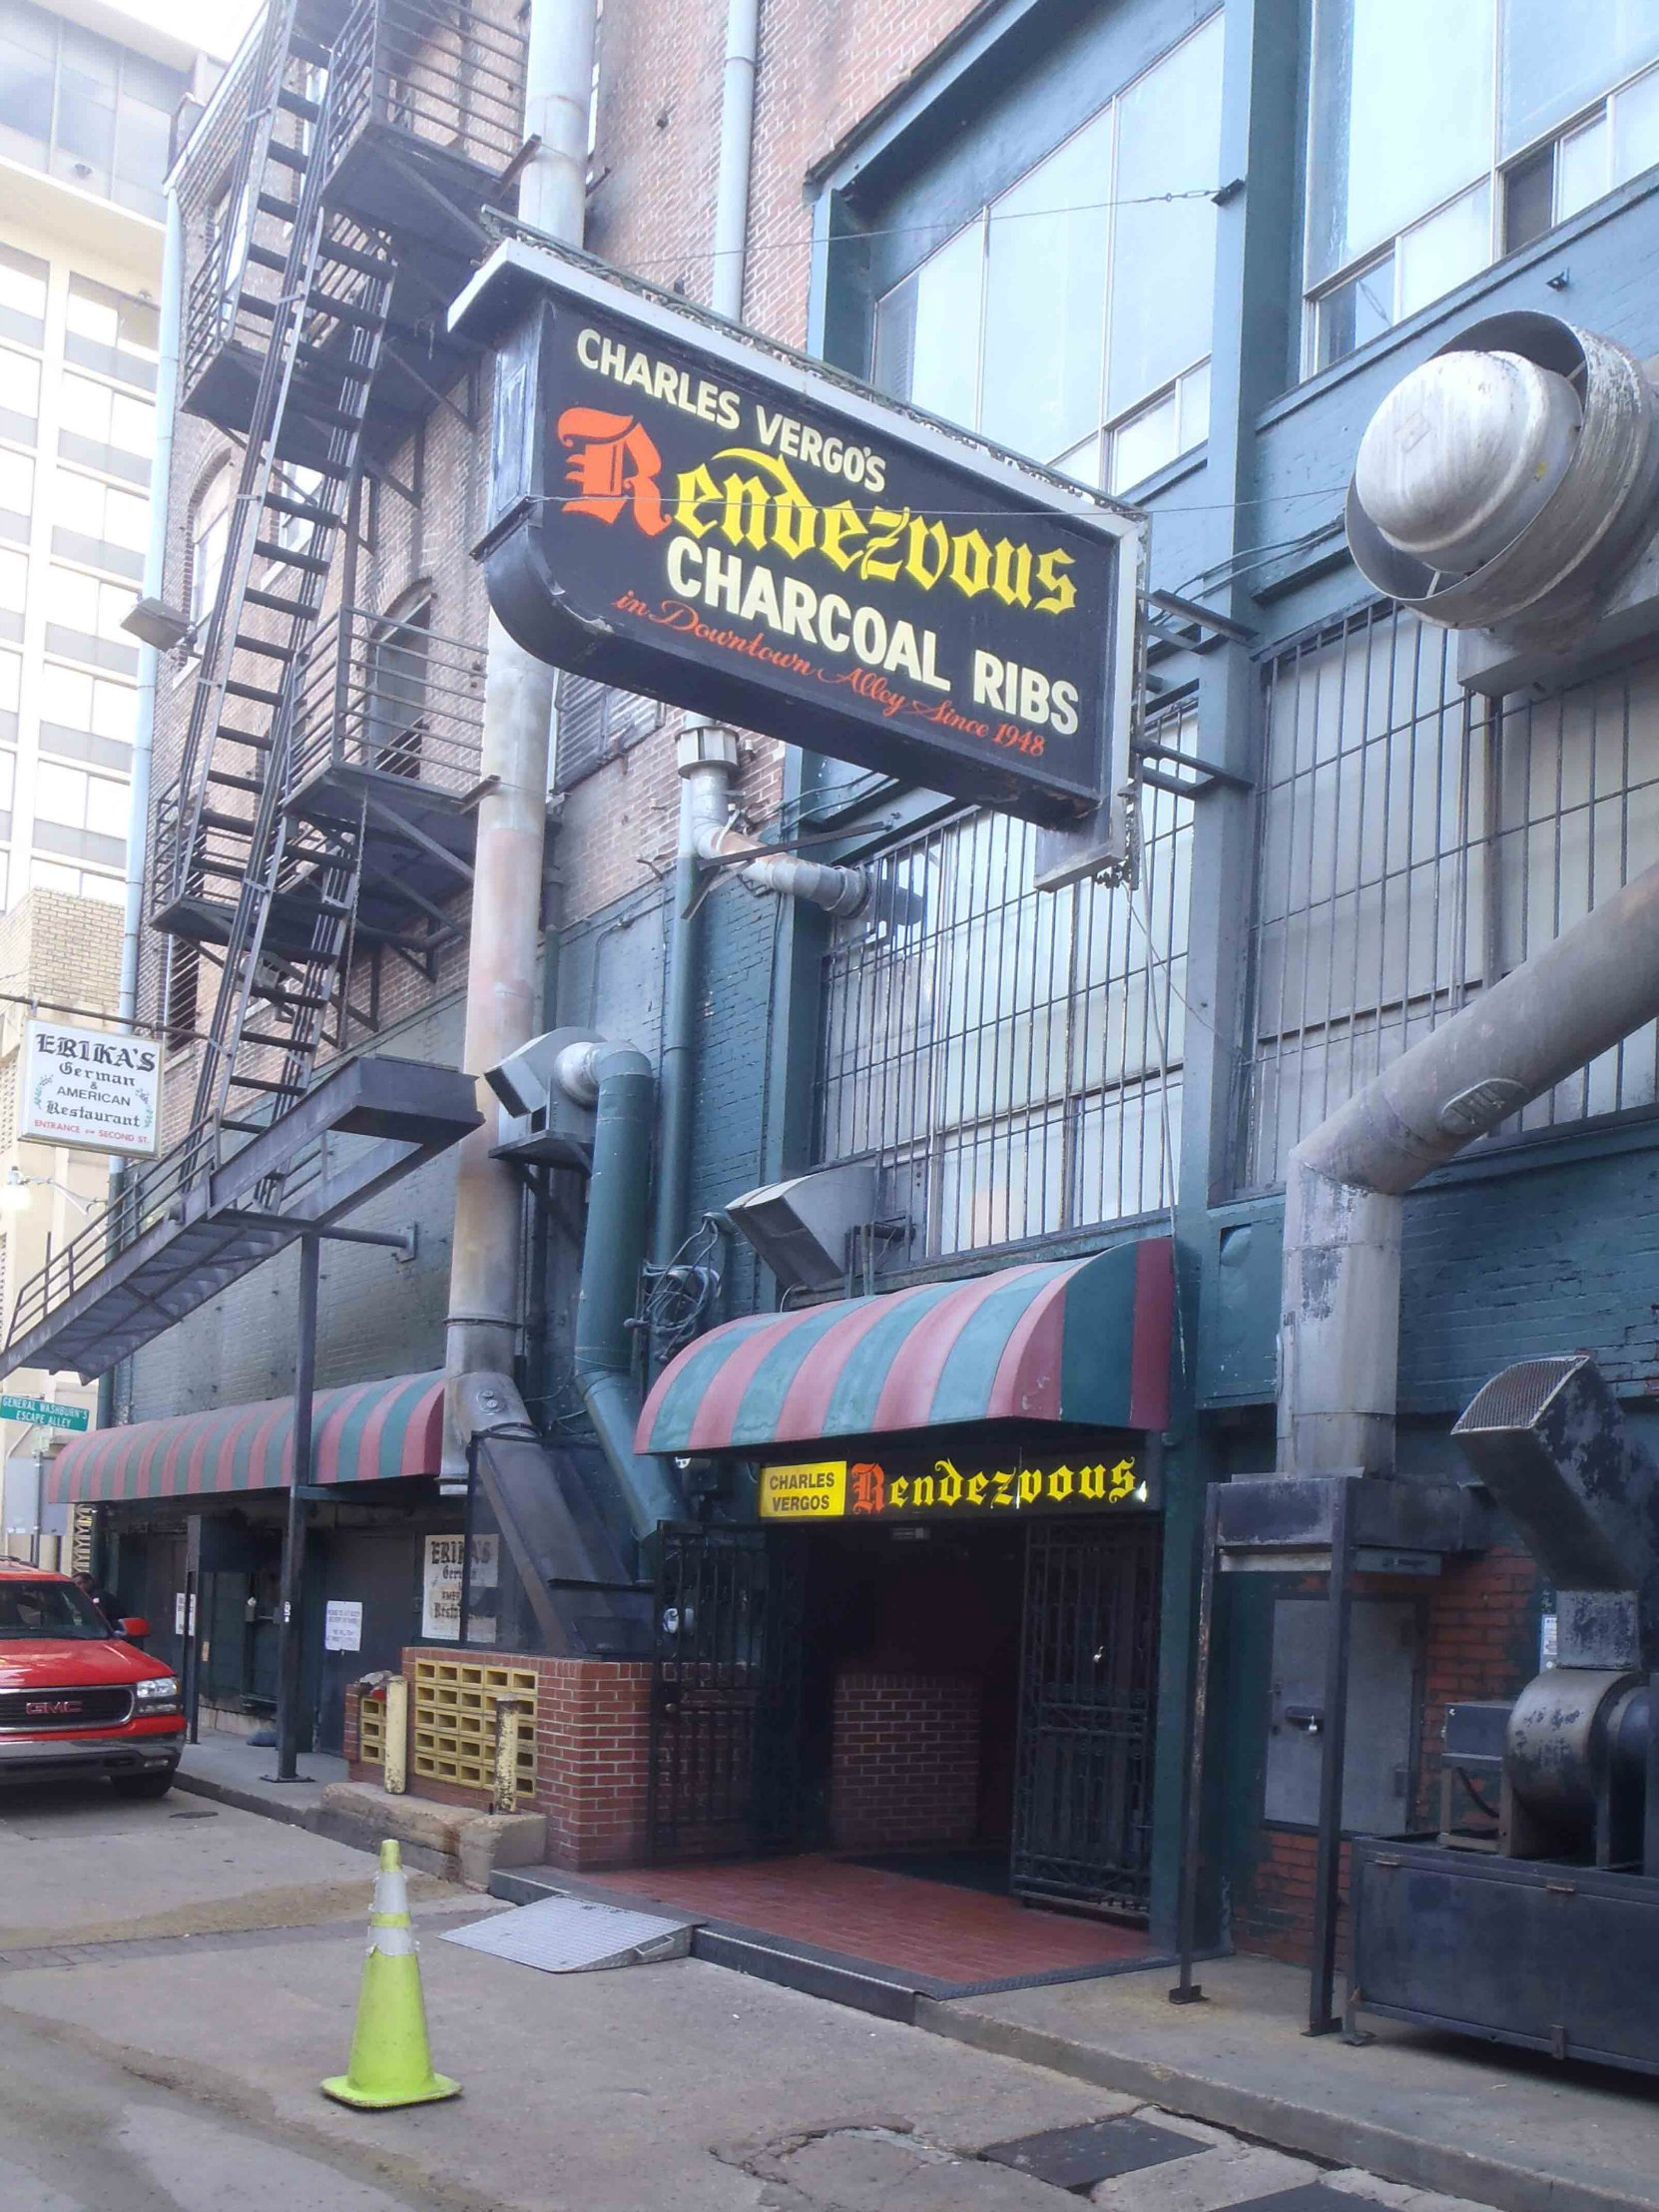 The entrance to Charles Vergo's Rendezvous, aka Charlie Vergo's Rendezvous, in downtown Memphis, Tennessee (photo by MississippiBluesTravellers.com)